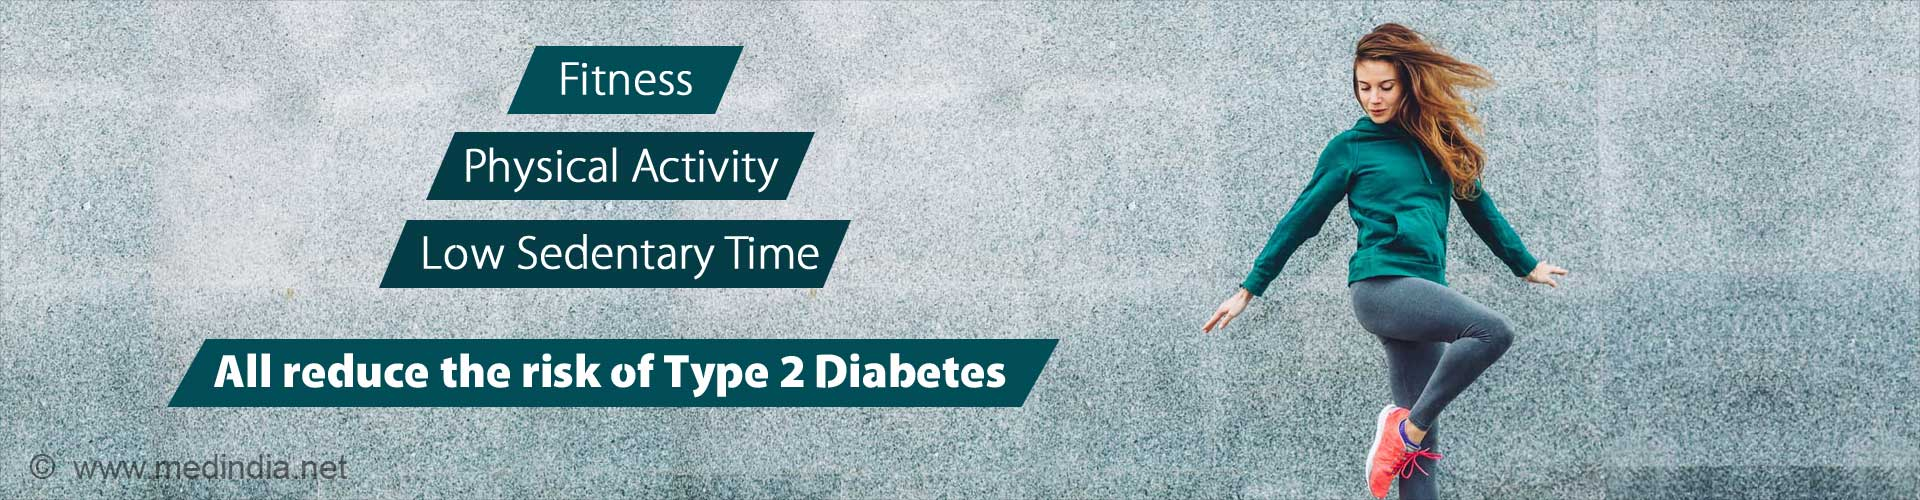 Fitness, physical activity, low sedentary time. all reduce the risk of Type 2 diabetes.